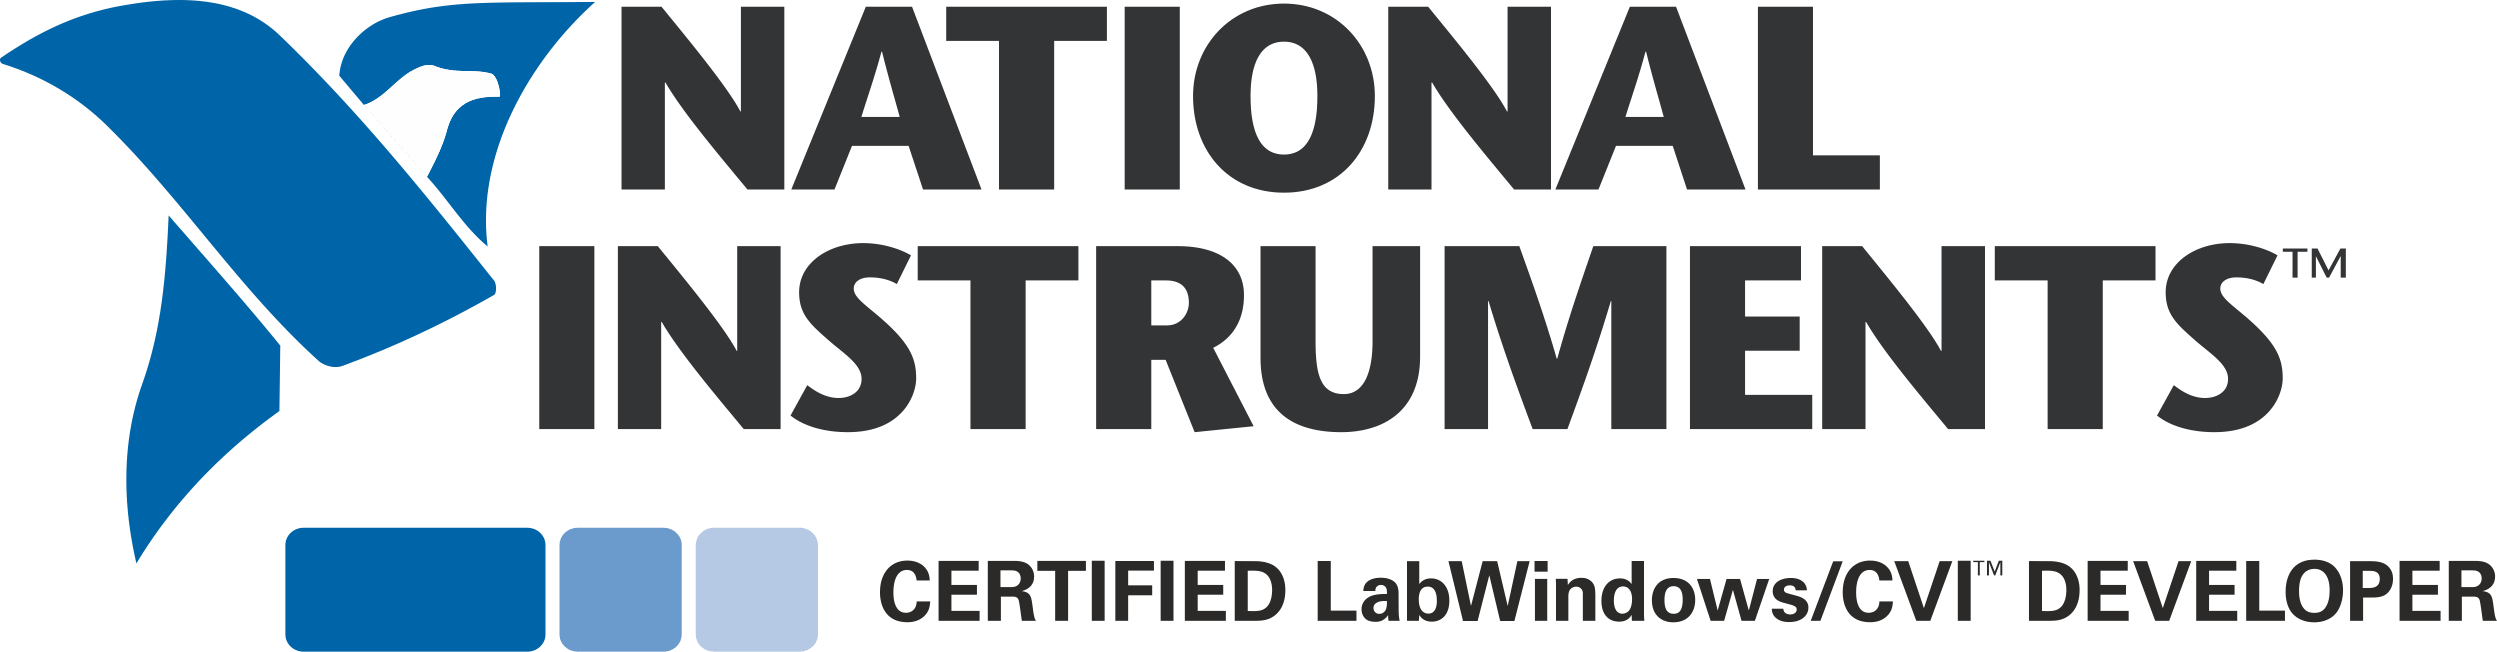 Certified LabWindows/CVI Developer